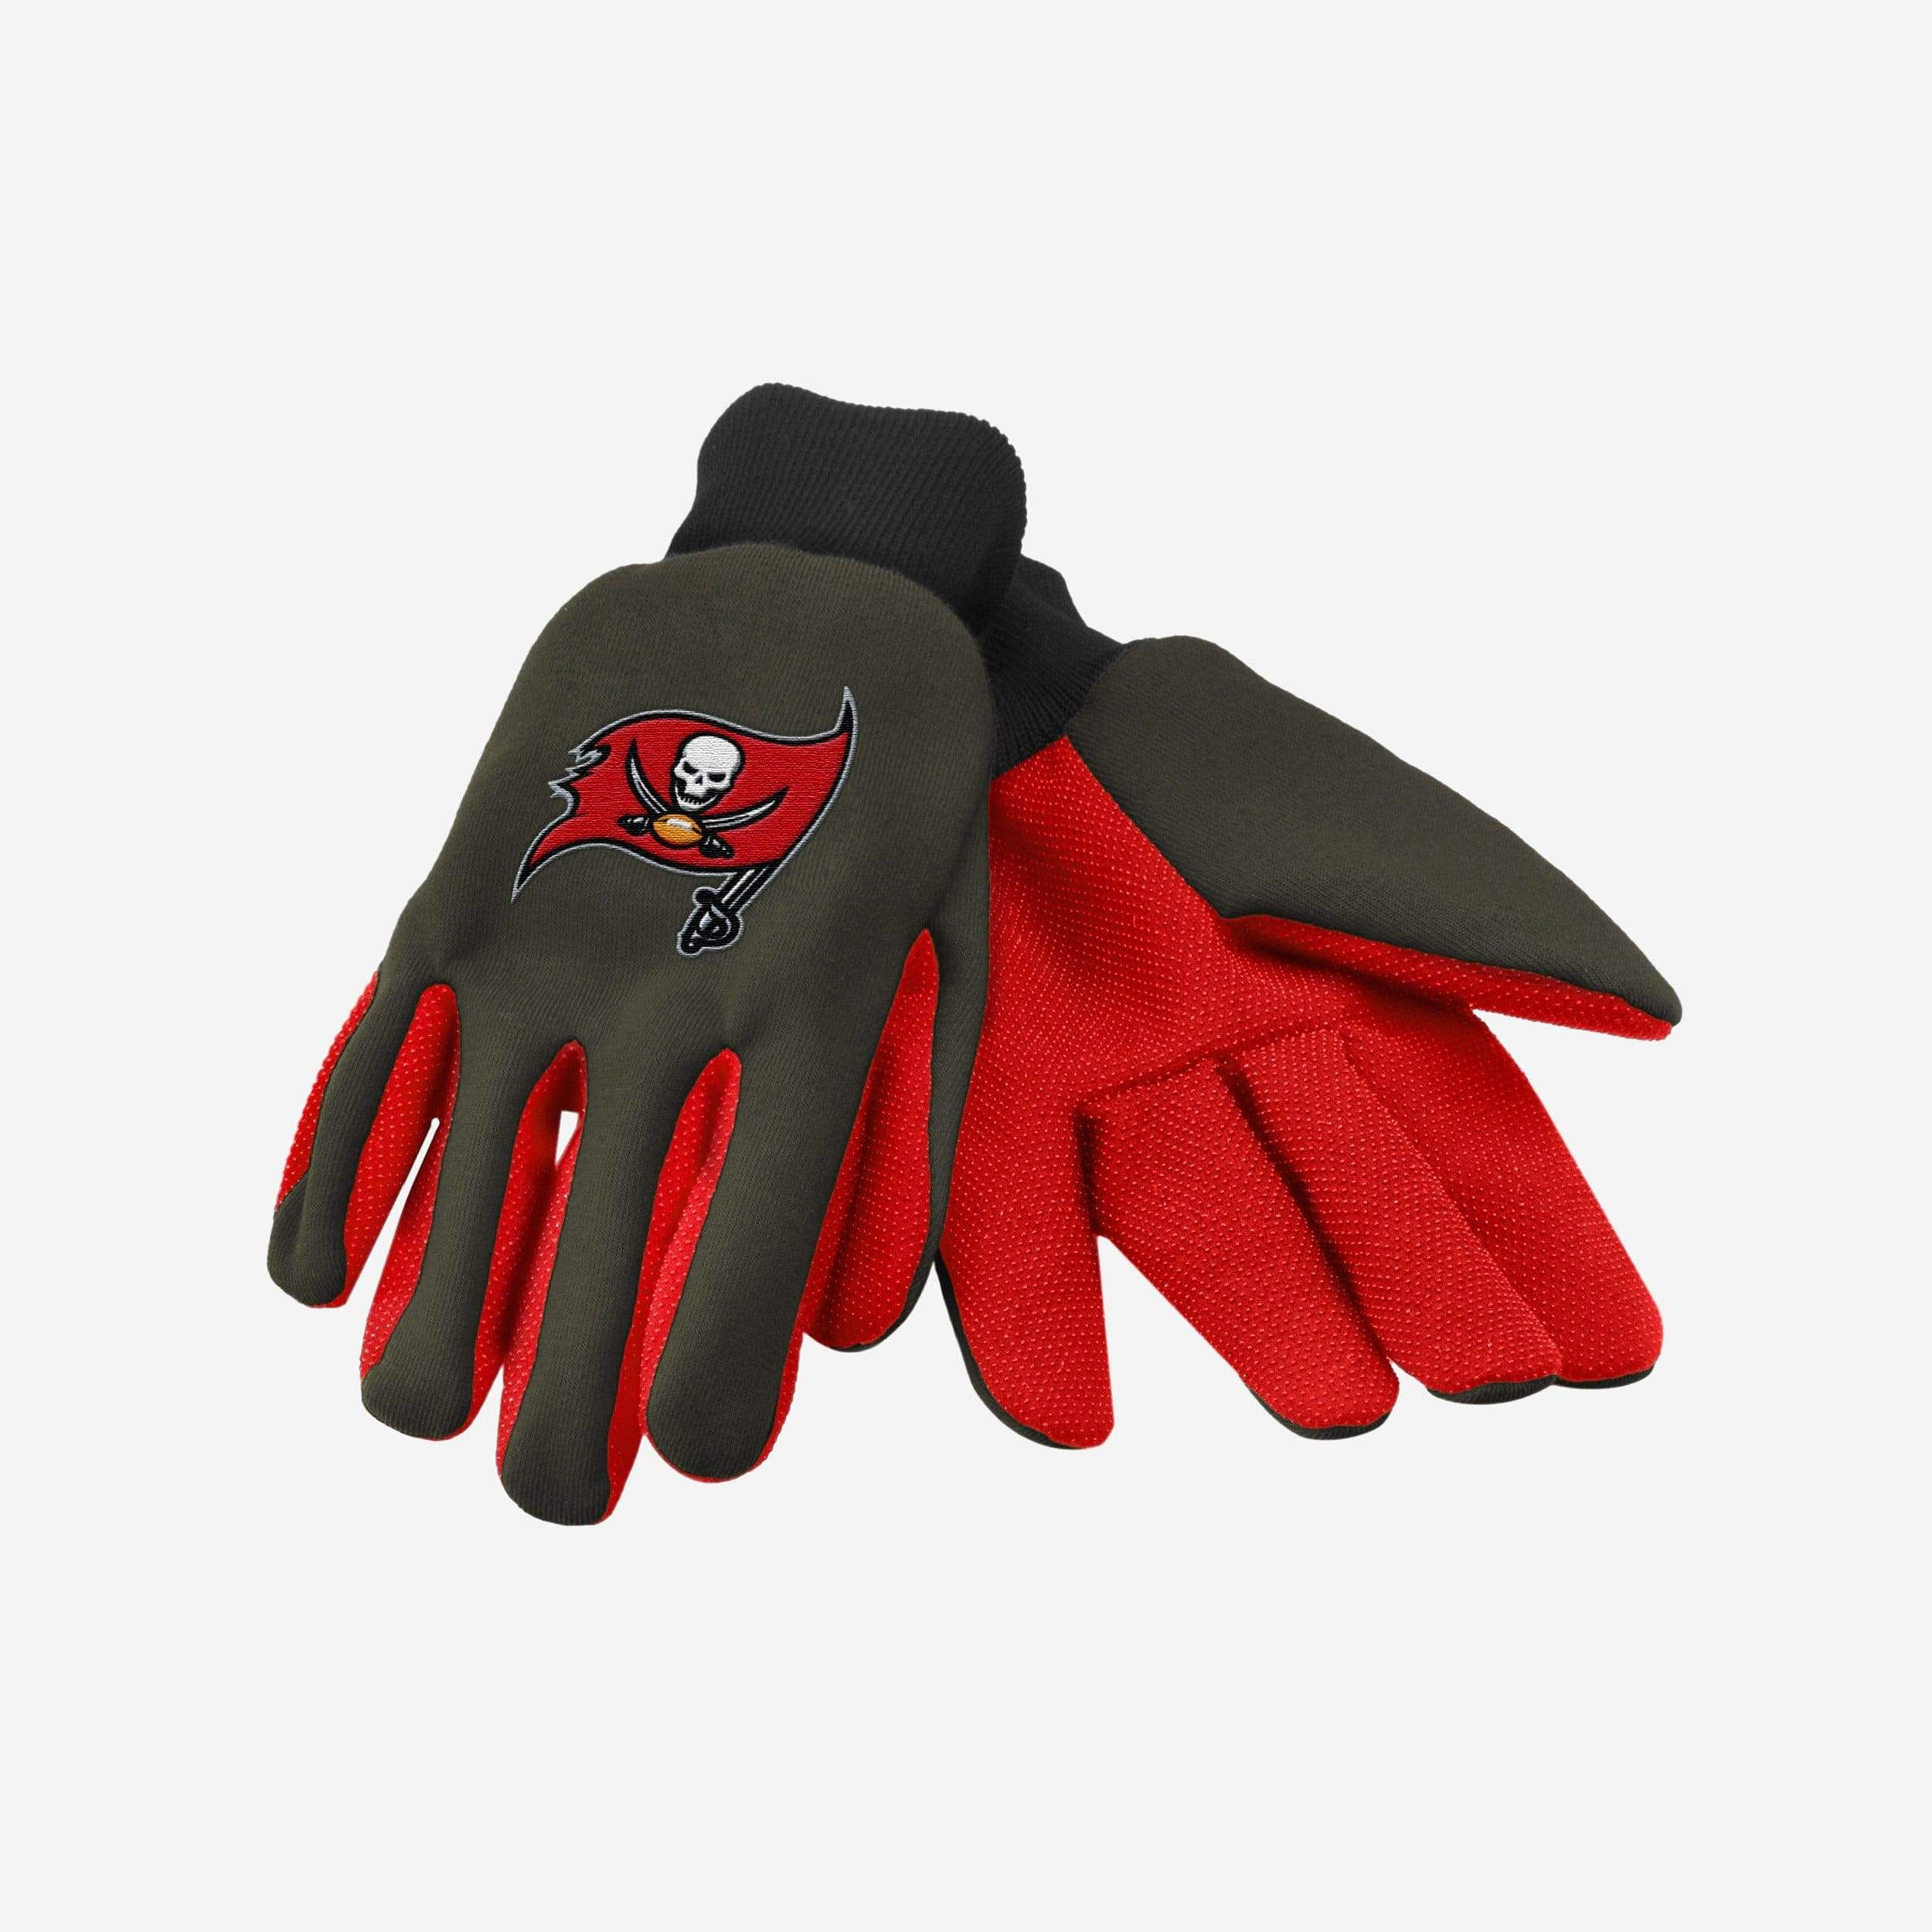 Tampa Bay Buccaneers Colored Palm Utility Glove In 2020 Tampa Bay Buccaneers Tampa Bay Buccaneers